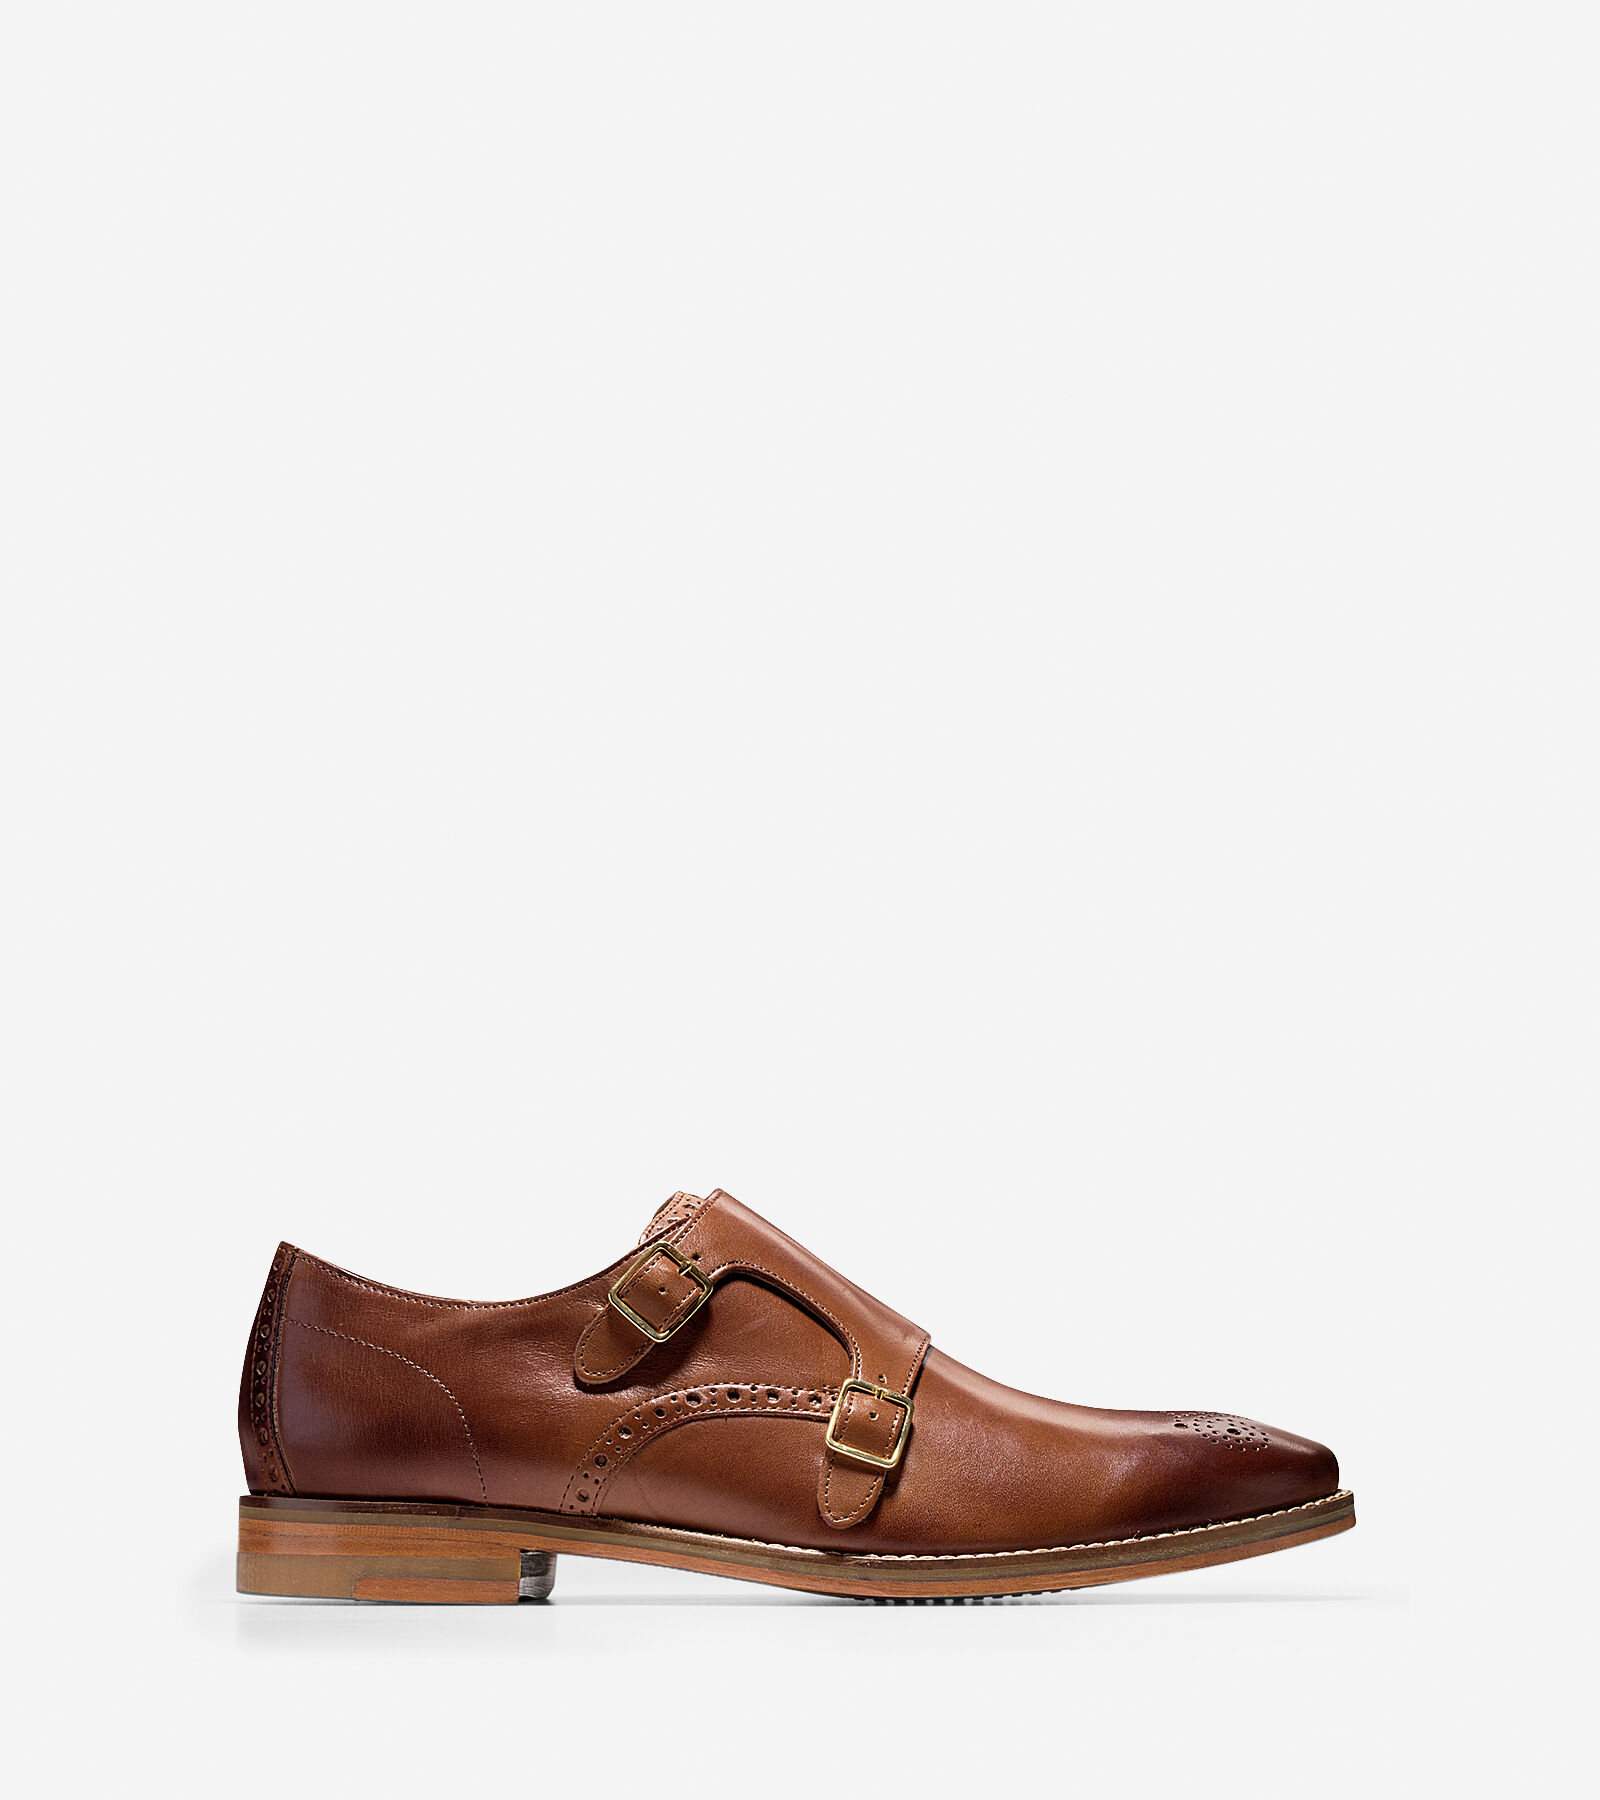 cole haan shoes jabong offers coupons4indy mobile 701160